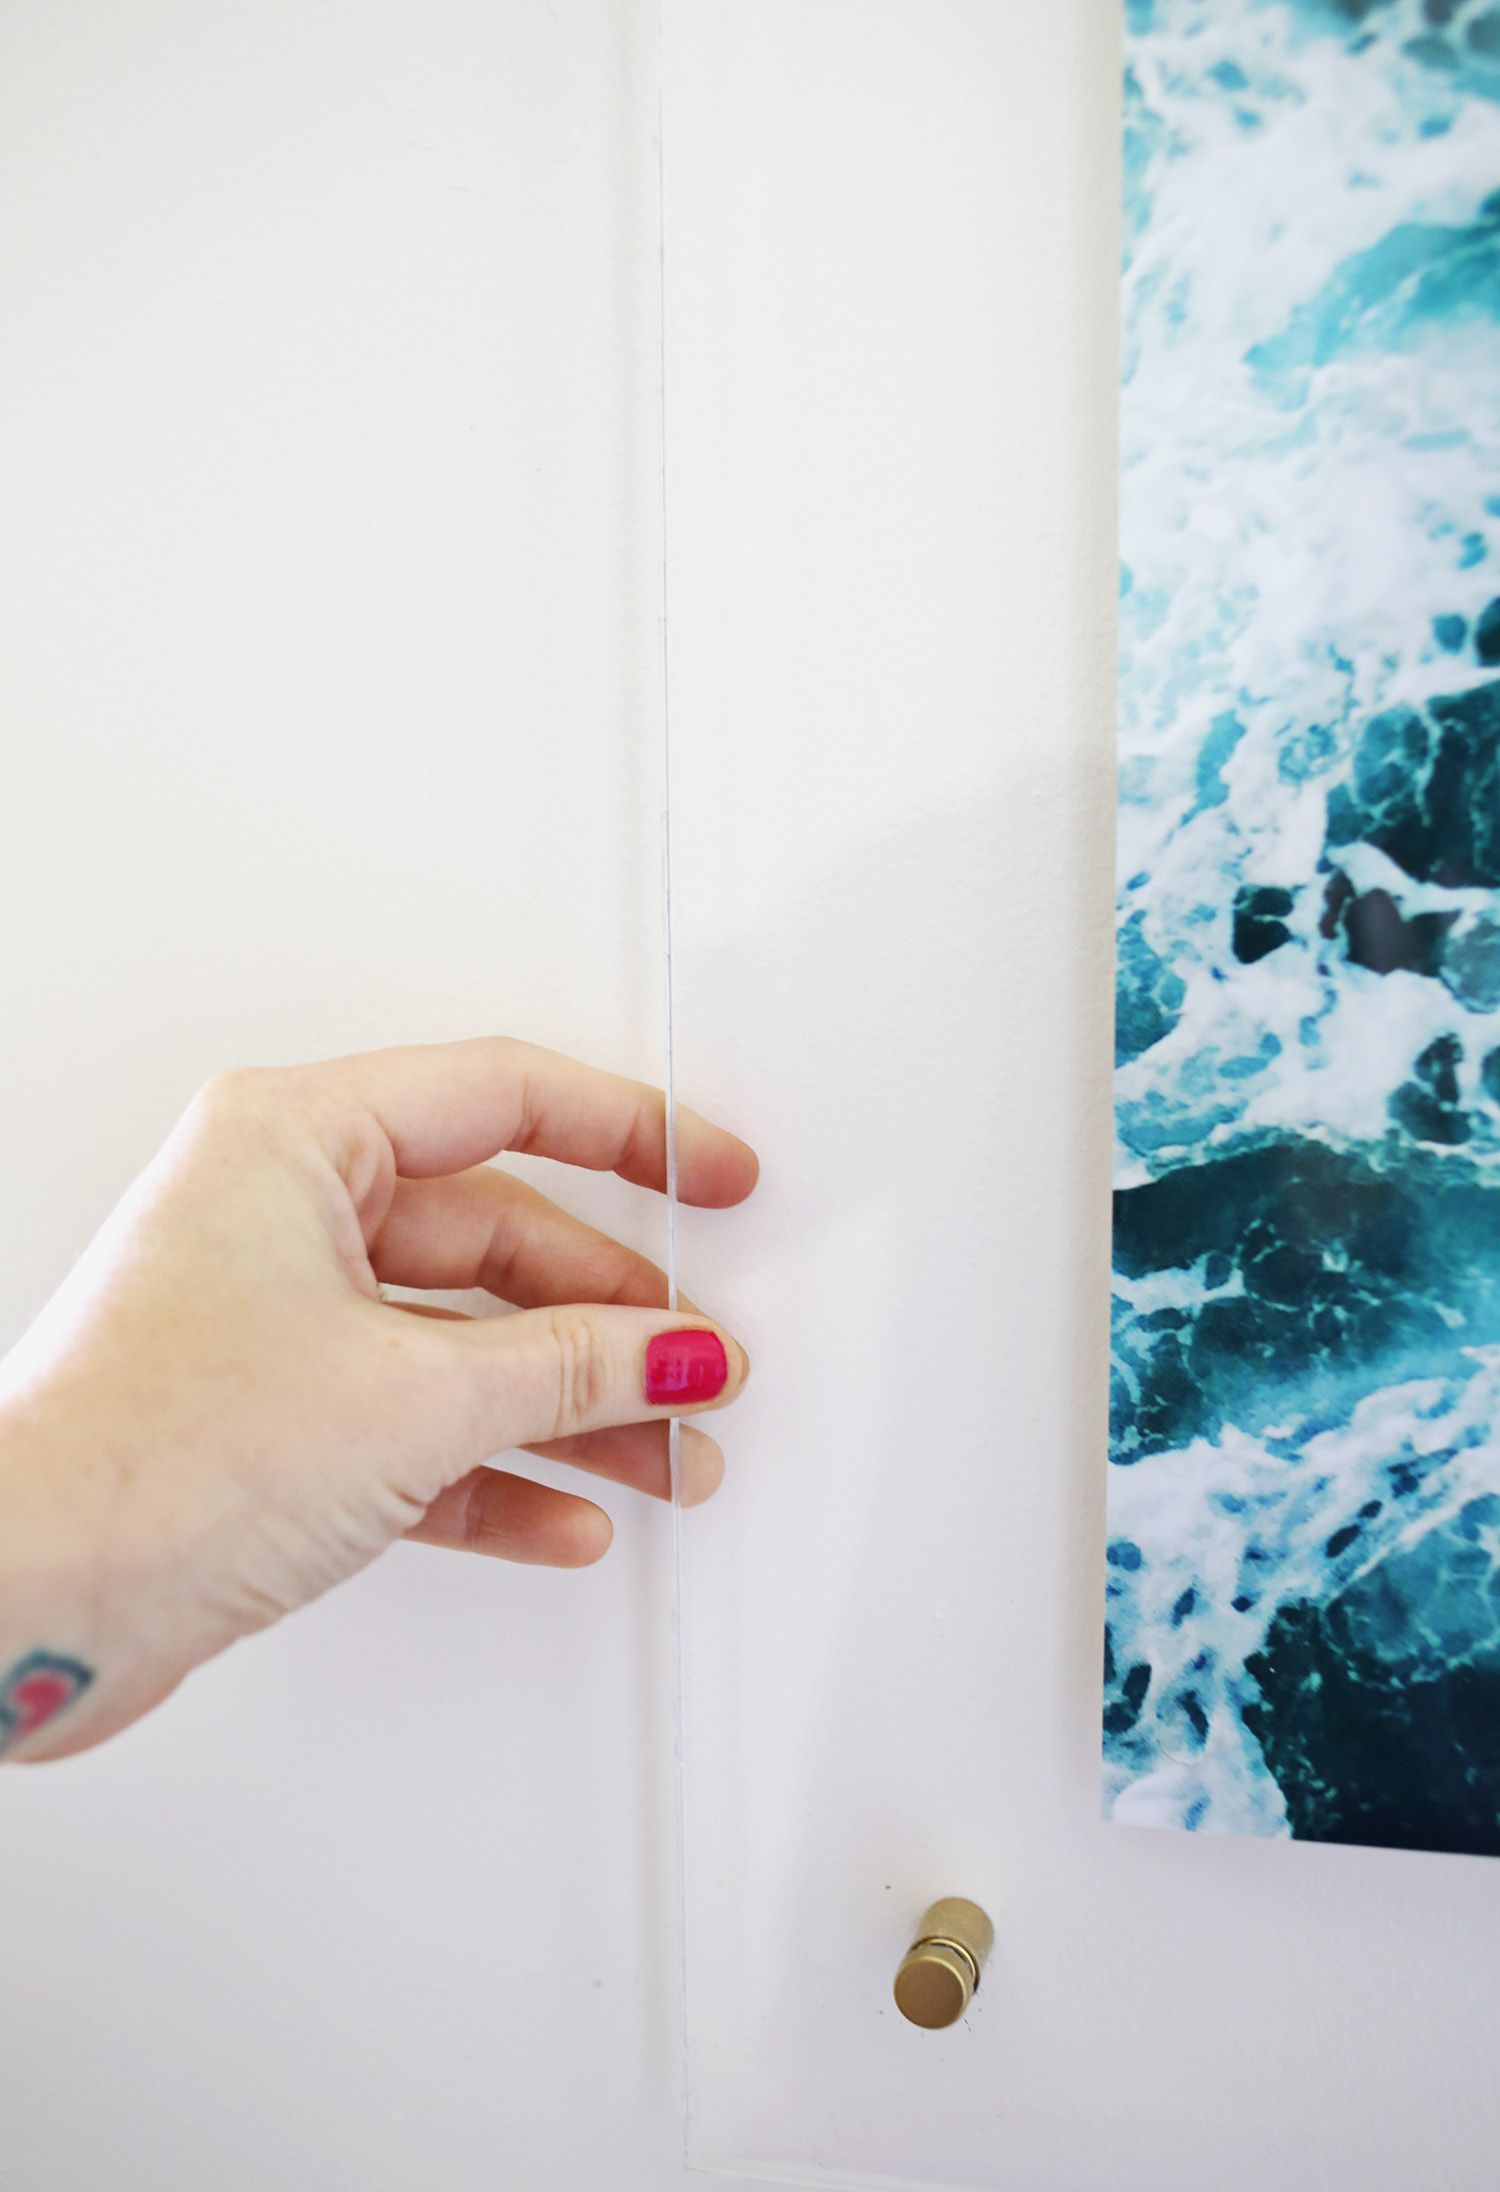 Floating Acrylic Frame DIY | Crafts | Pinterest | Acrylic frames ...